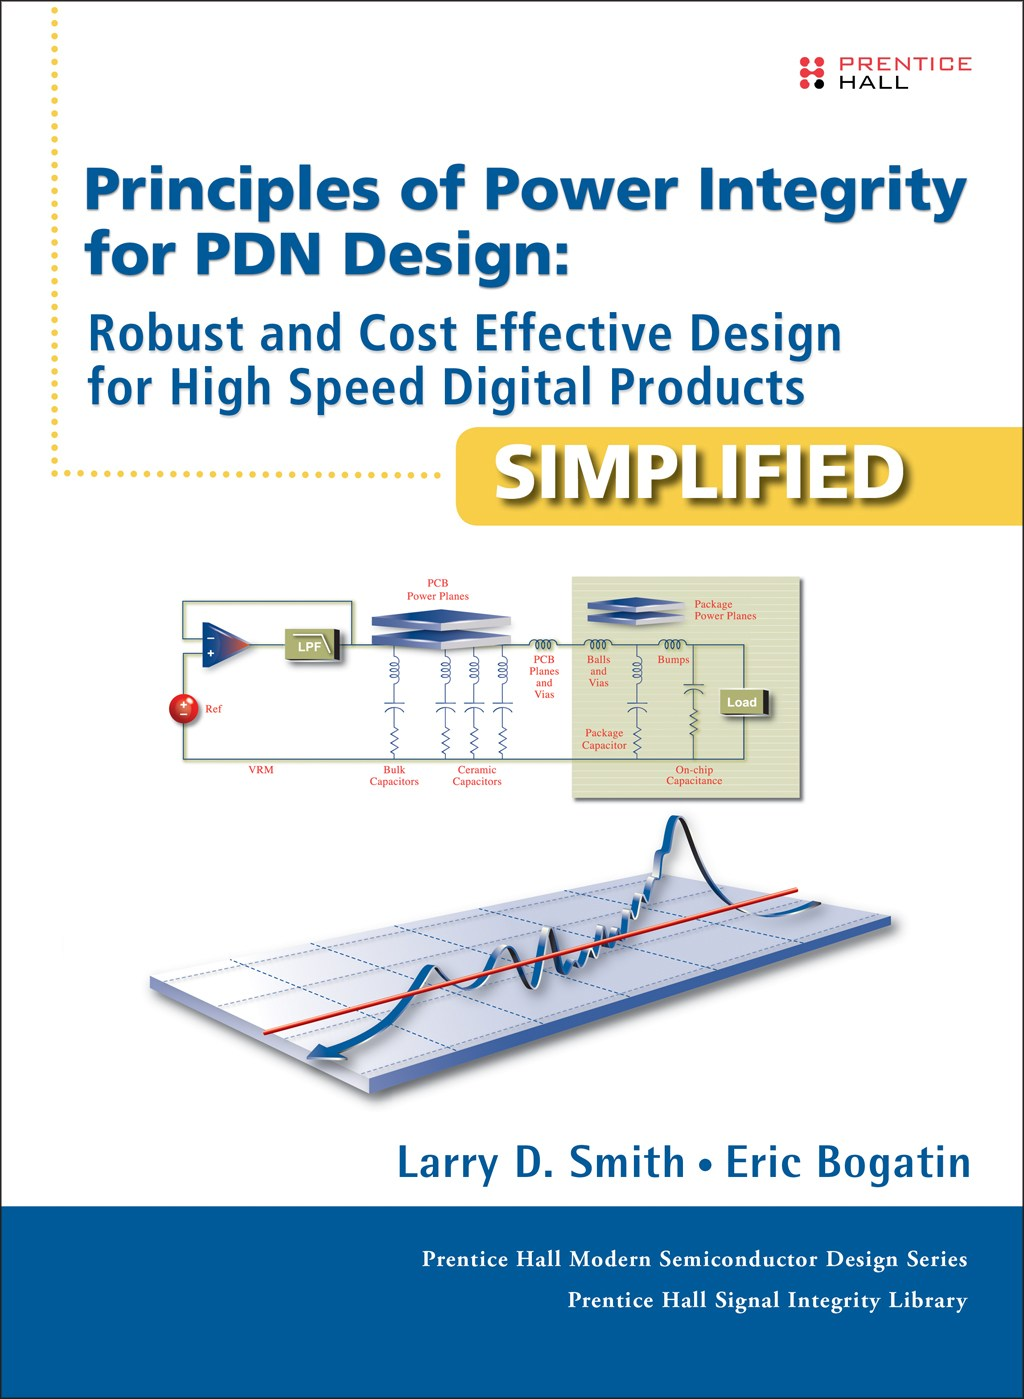 Principles of Power Integrity for PDN Design--Simplified: Robust and Cost Effective Design for High Speed Digital Products